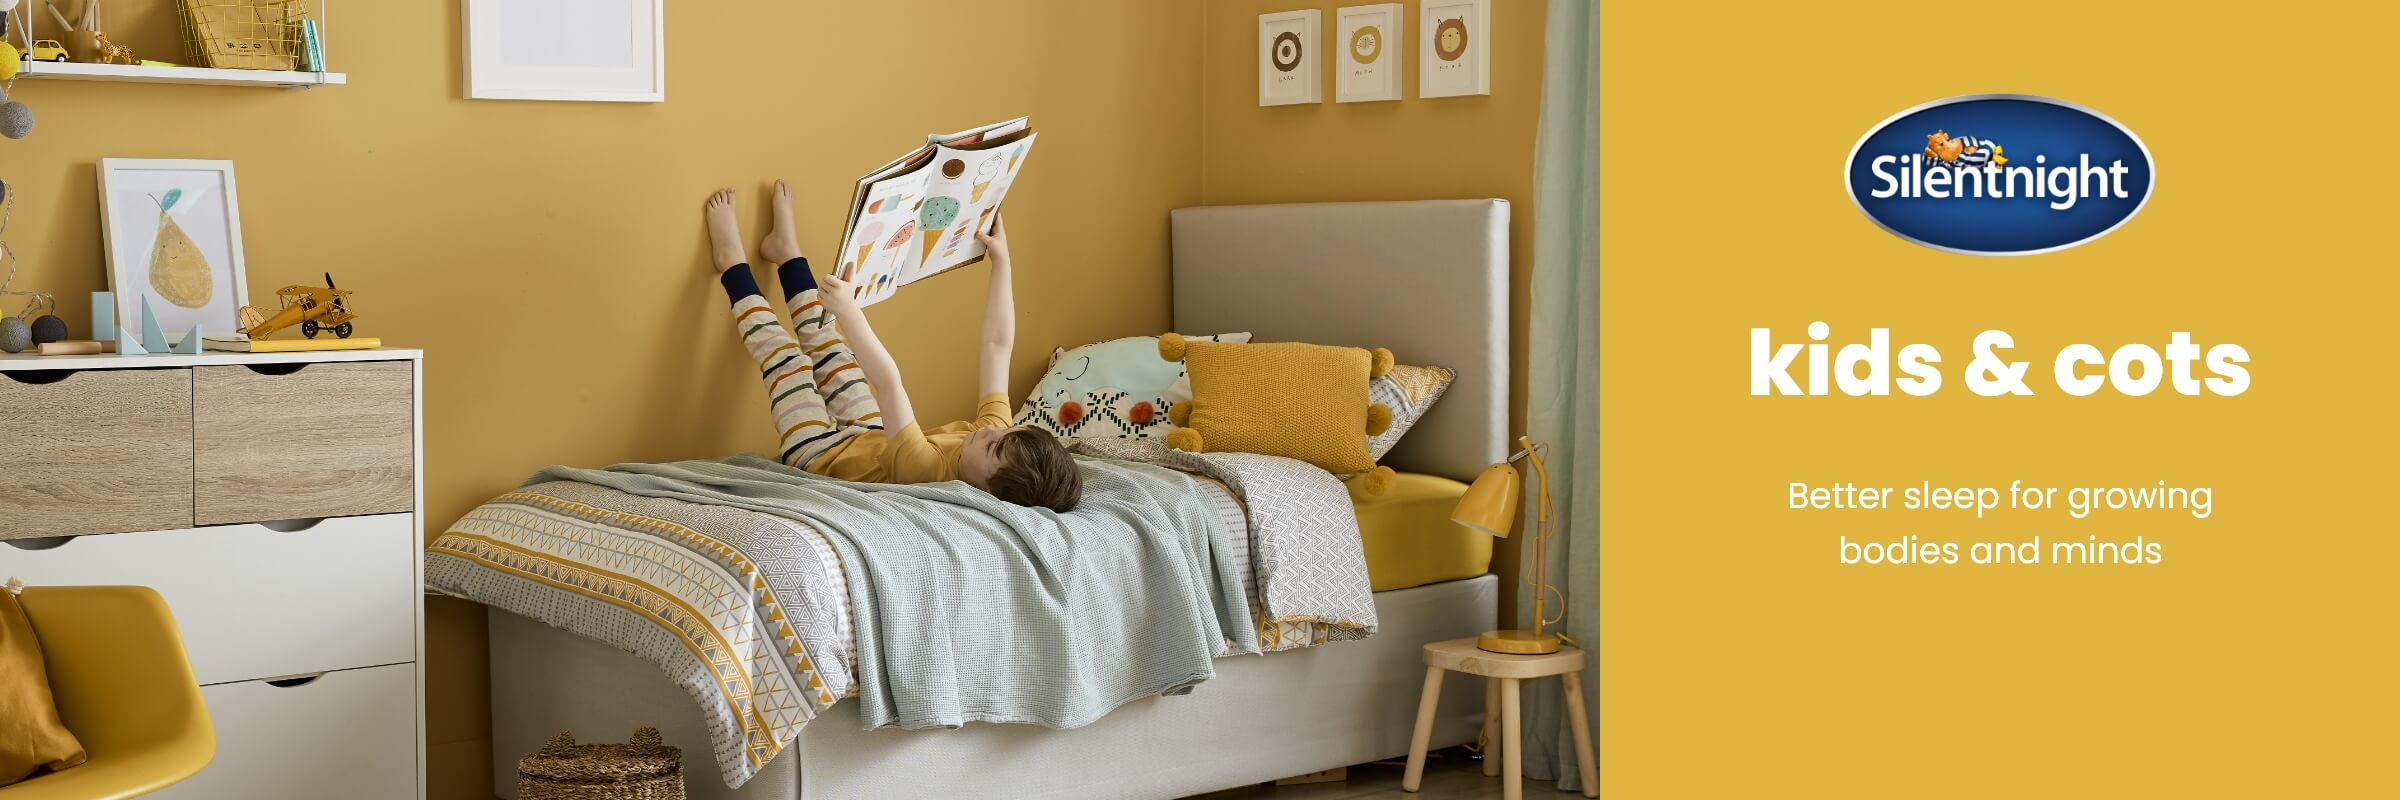 Silentnight Cots and Kids collection at MattressOnline. The Secret to a Great Night's Sleep